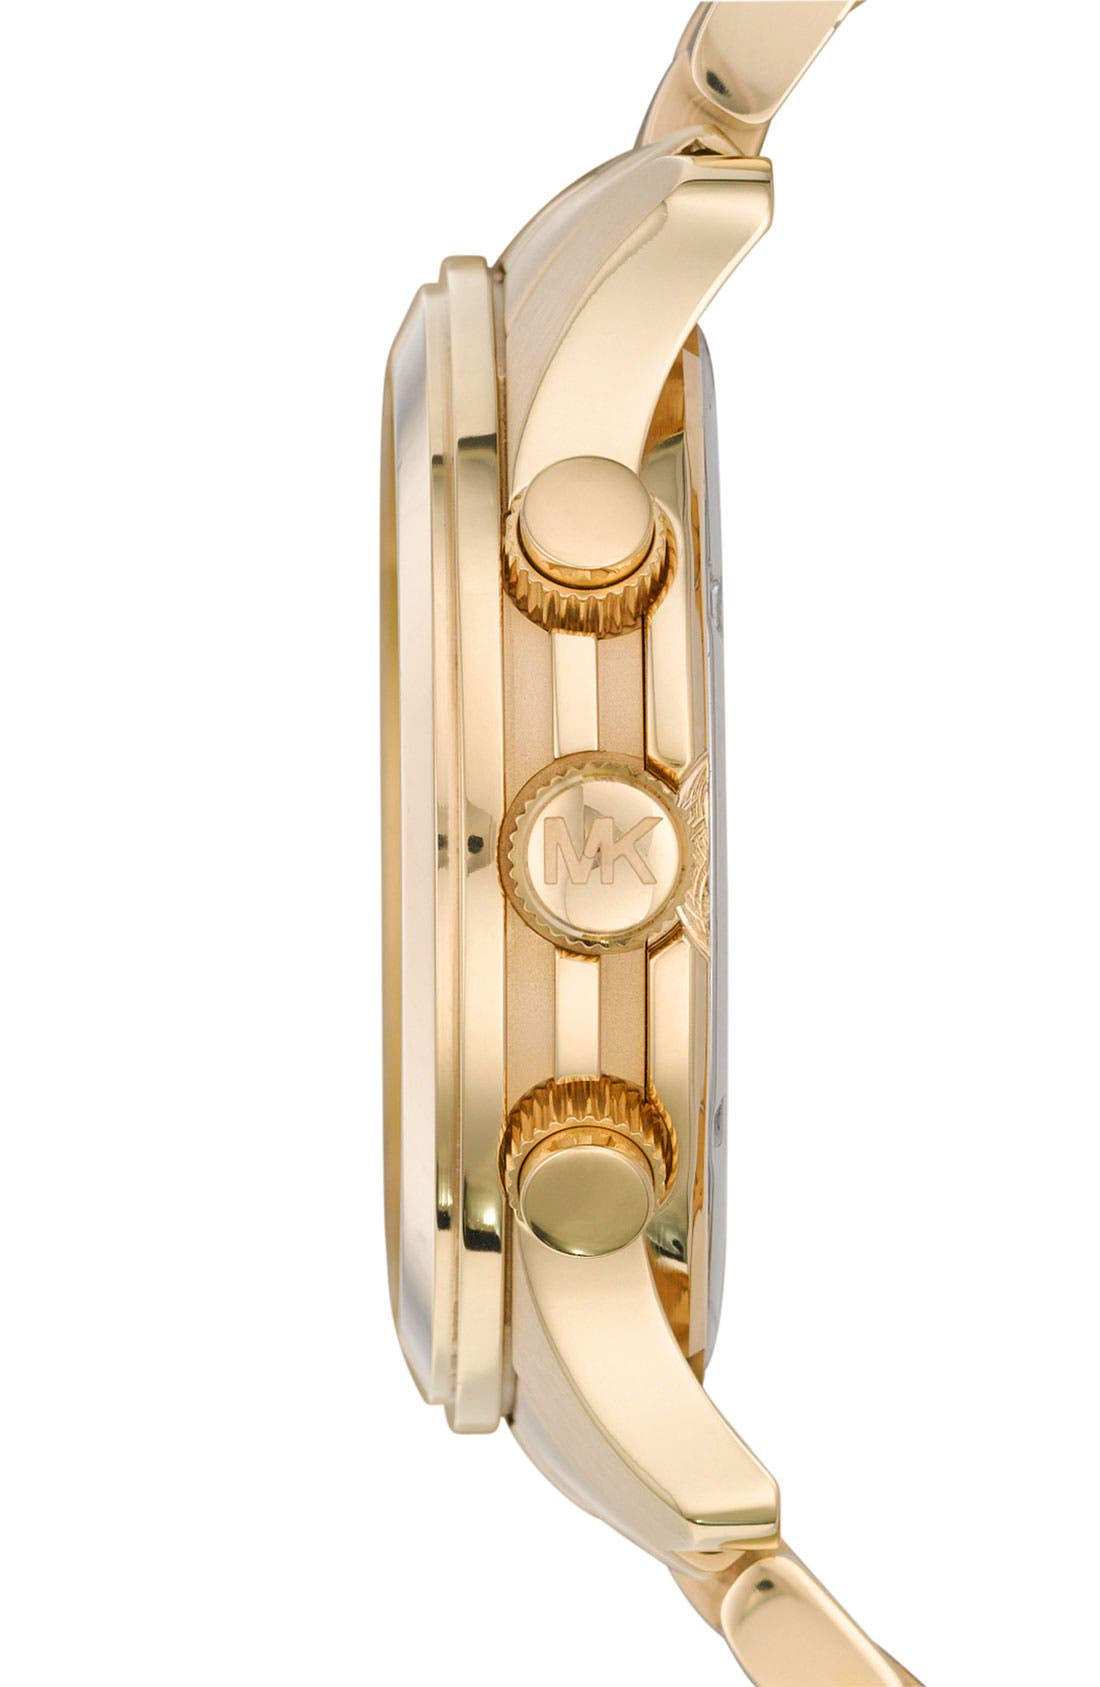 MICHAEL KORS, 'Large Runway' Chronograph Bracelet Watch, 45mm, Alternate thumbnail 4, color, GOLD